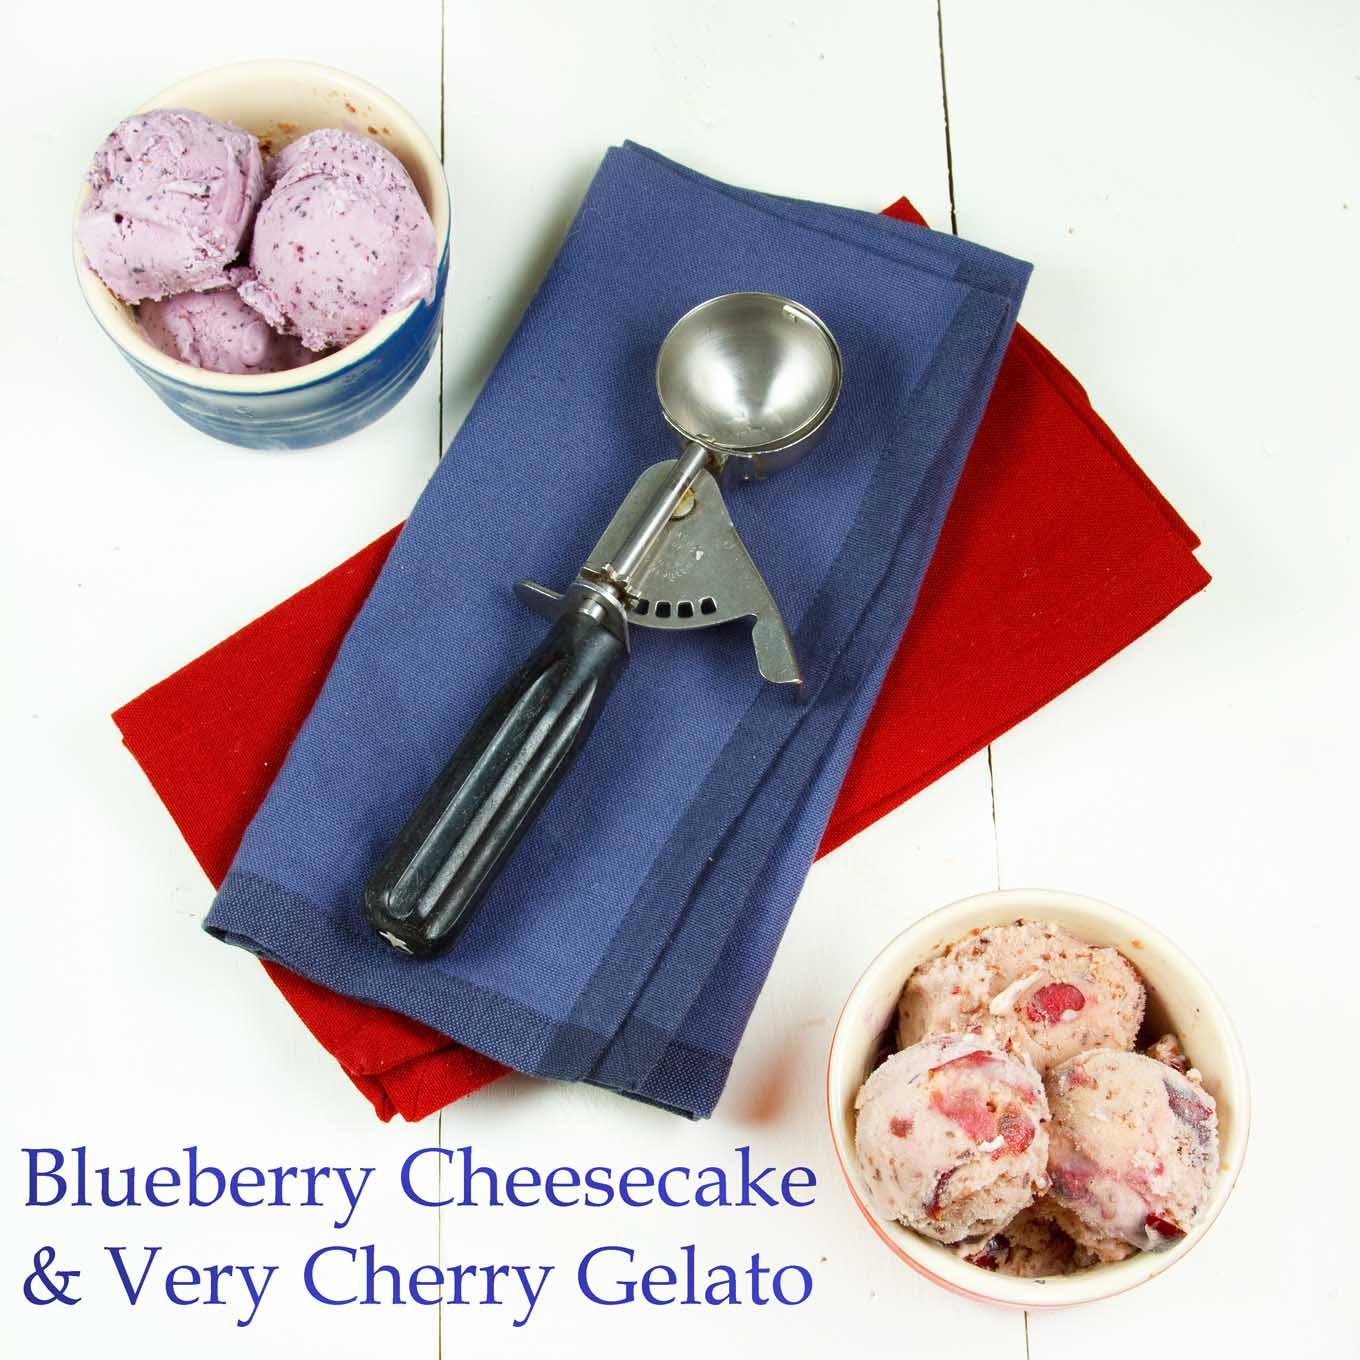 Blueberry Cheesecake and Very Cherry Gelato